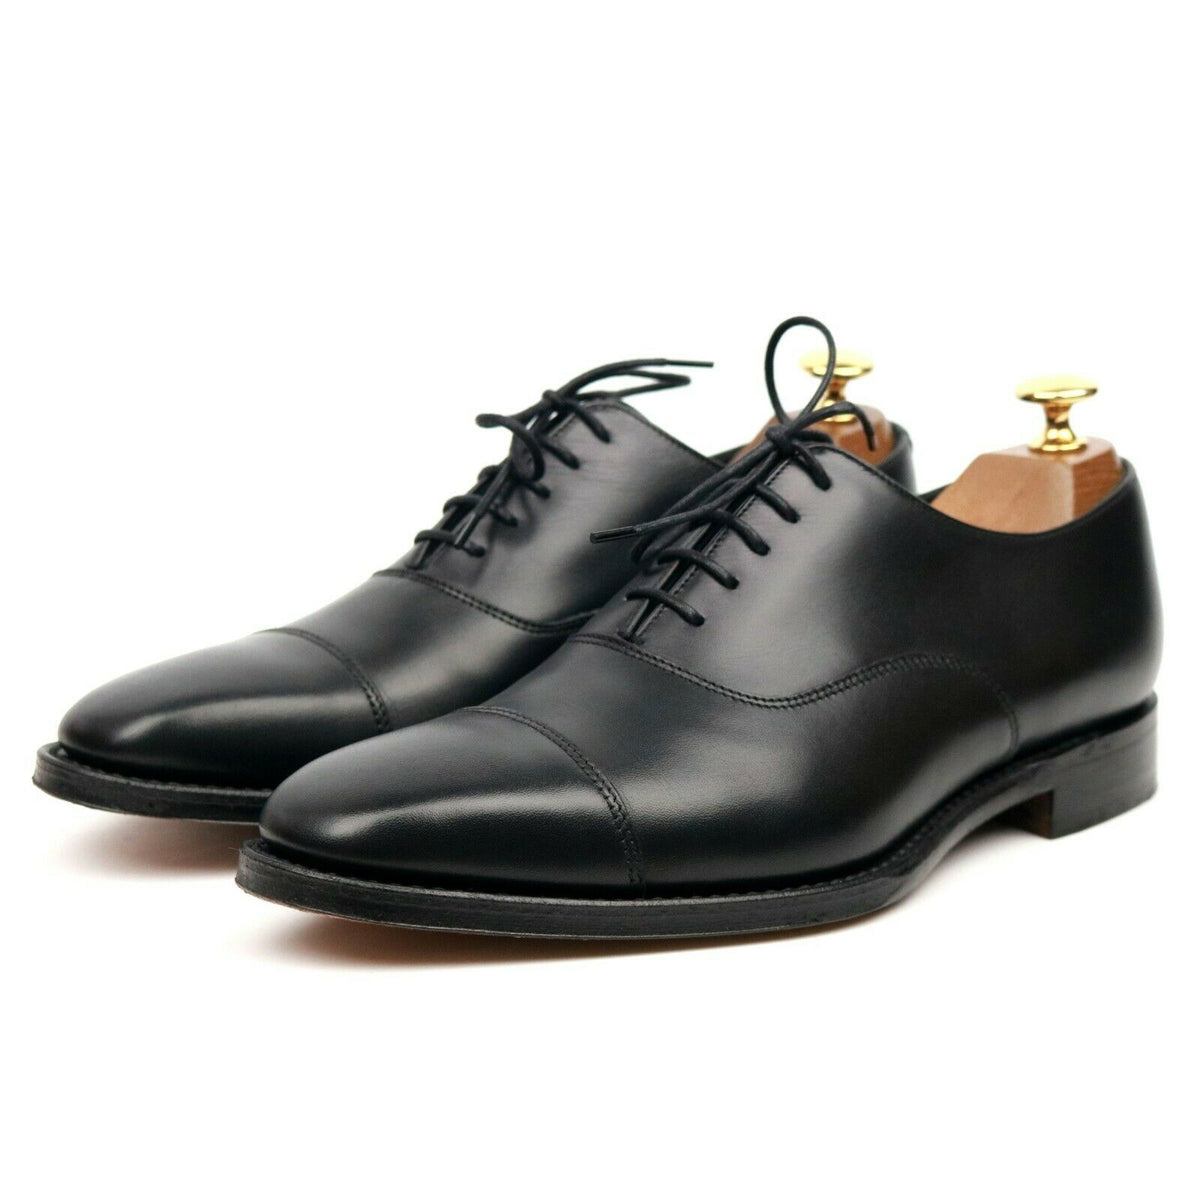 Loake 1880 'Rothschild' Black Leather Oxford UK 6 E